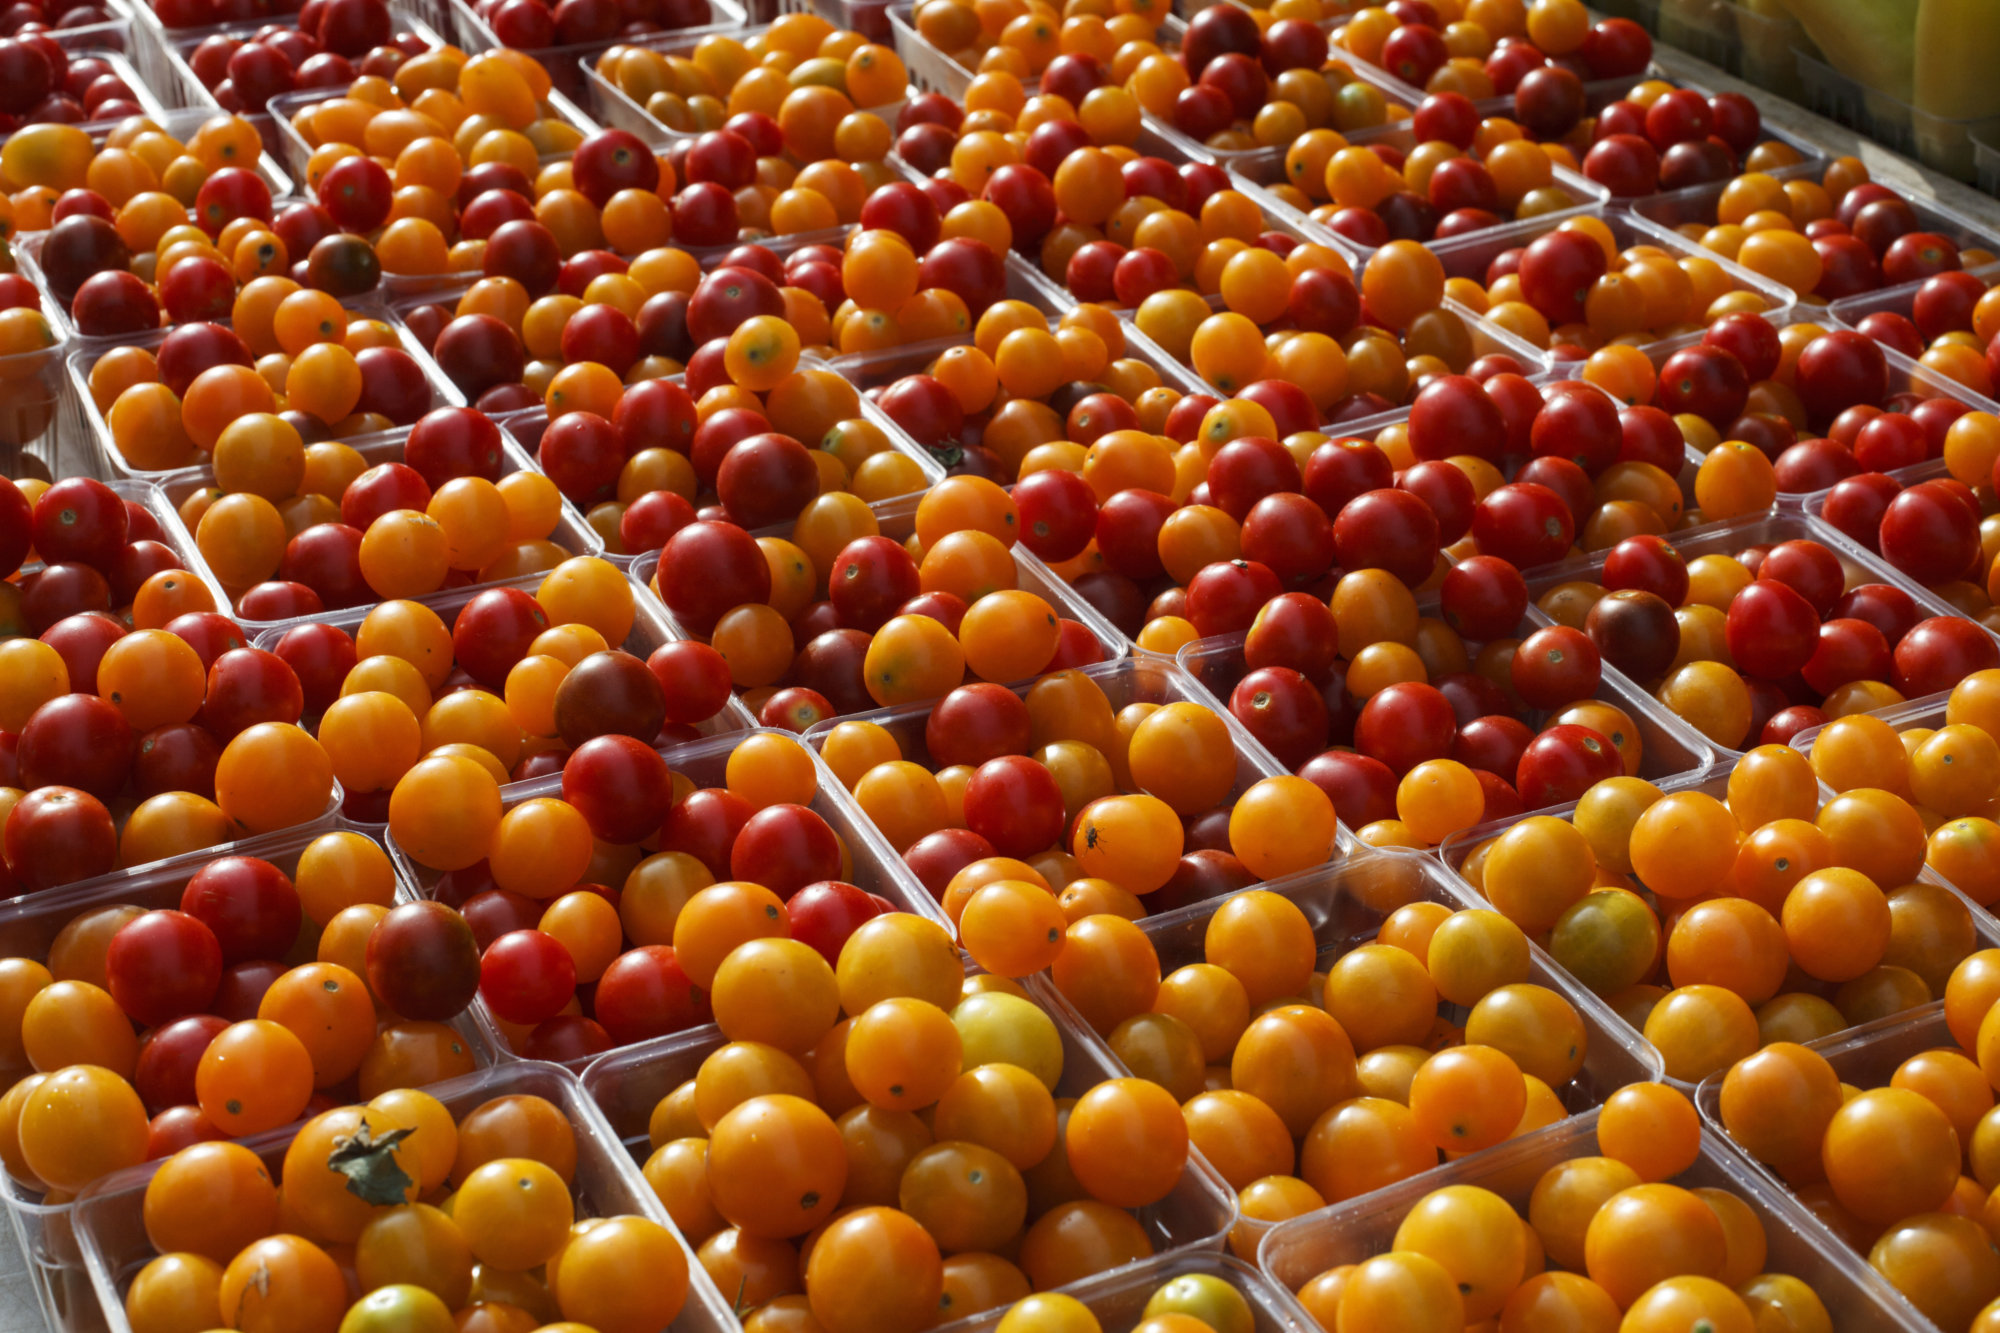 Cherry tomatoes are displayed for sale with summer fruits and vegetables at a farmers market in Falls Church, Va., Saturday, July 28, 2017. (AP Photo/J. Scott Applewhite)